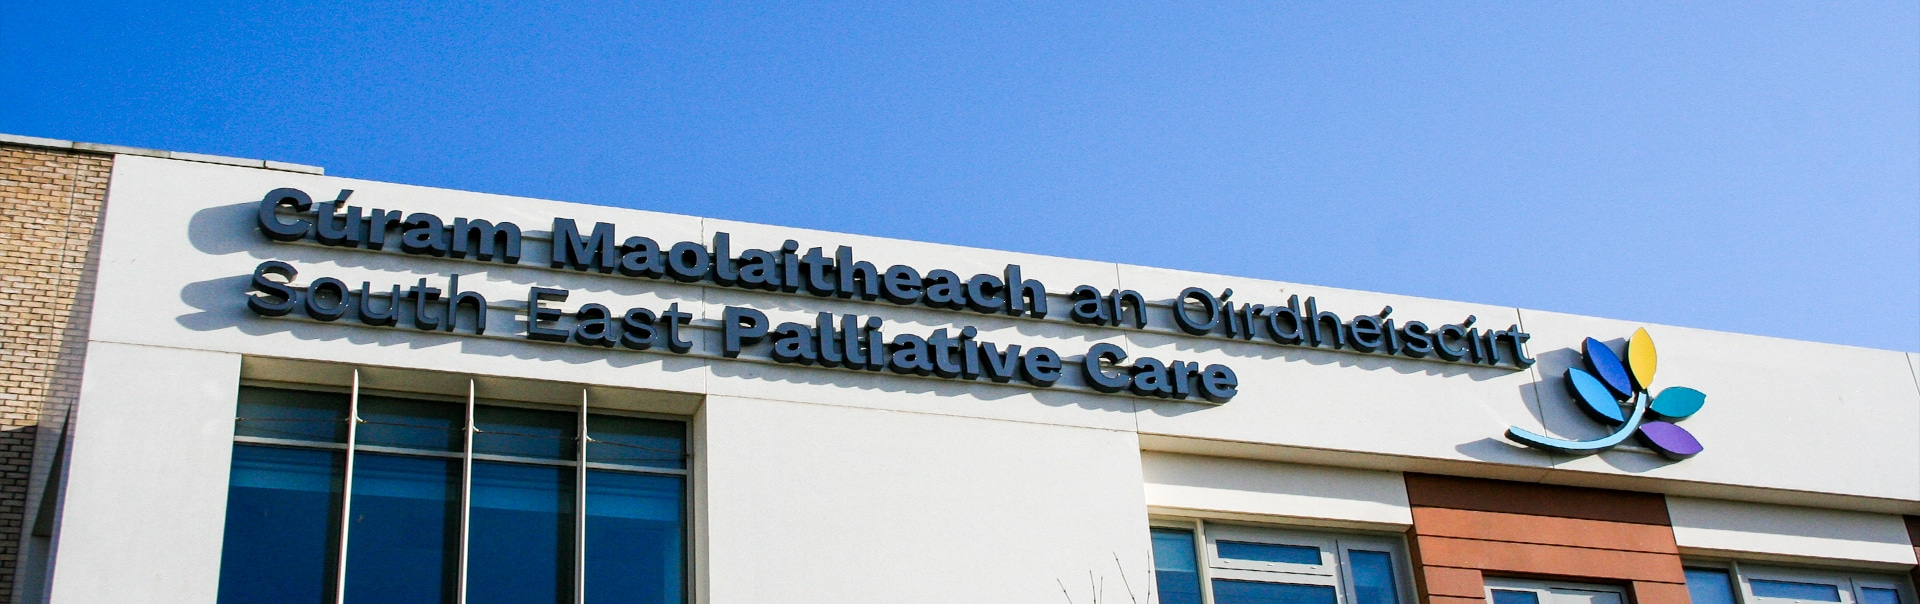 Face-lit skyline sign by day, University Hospital Waterford